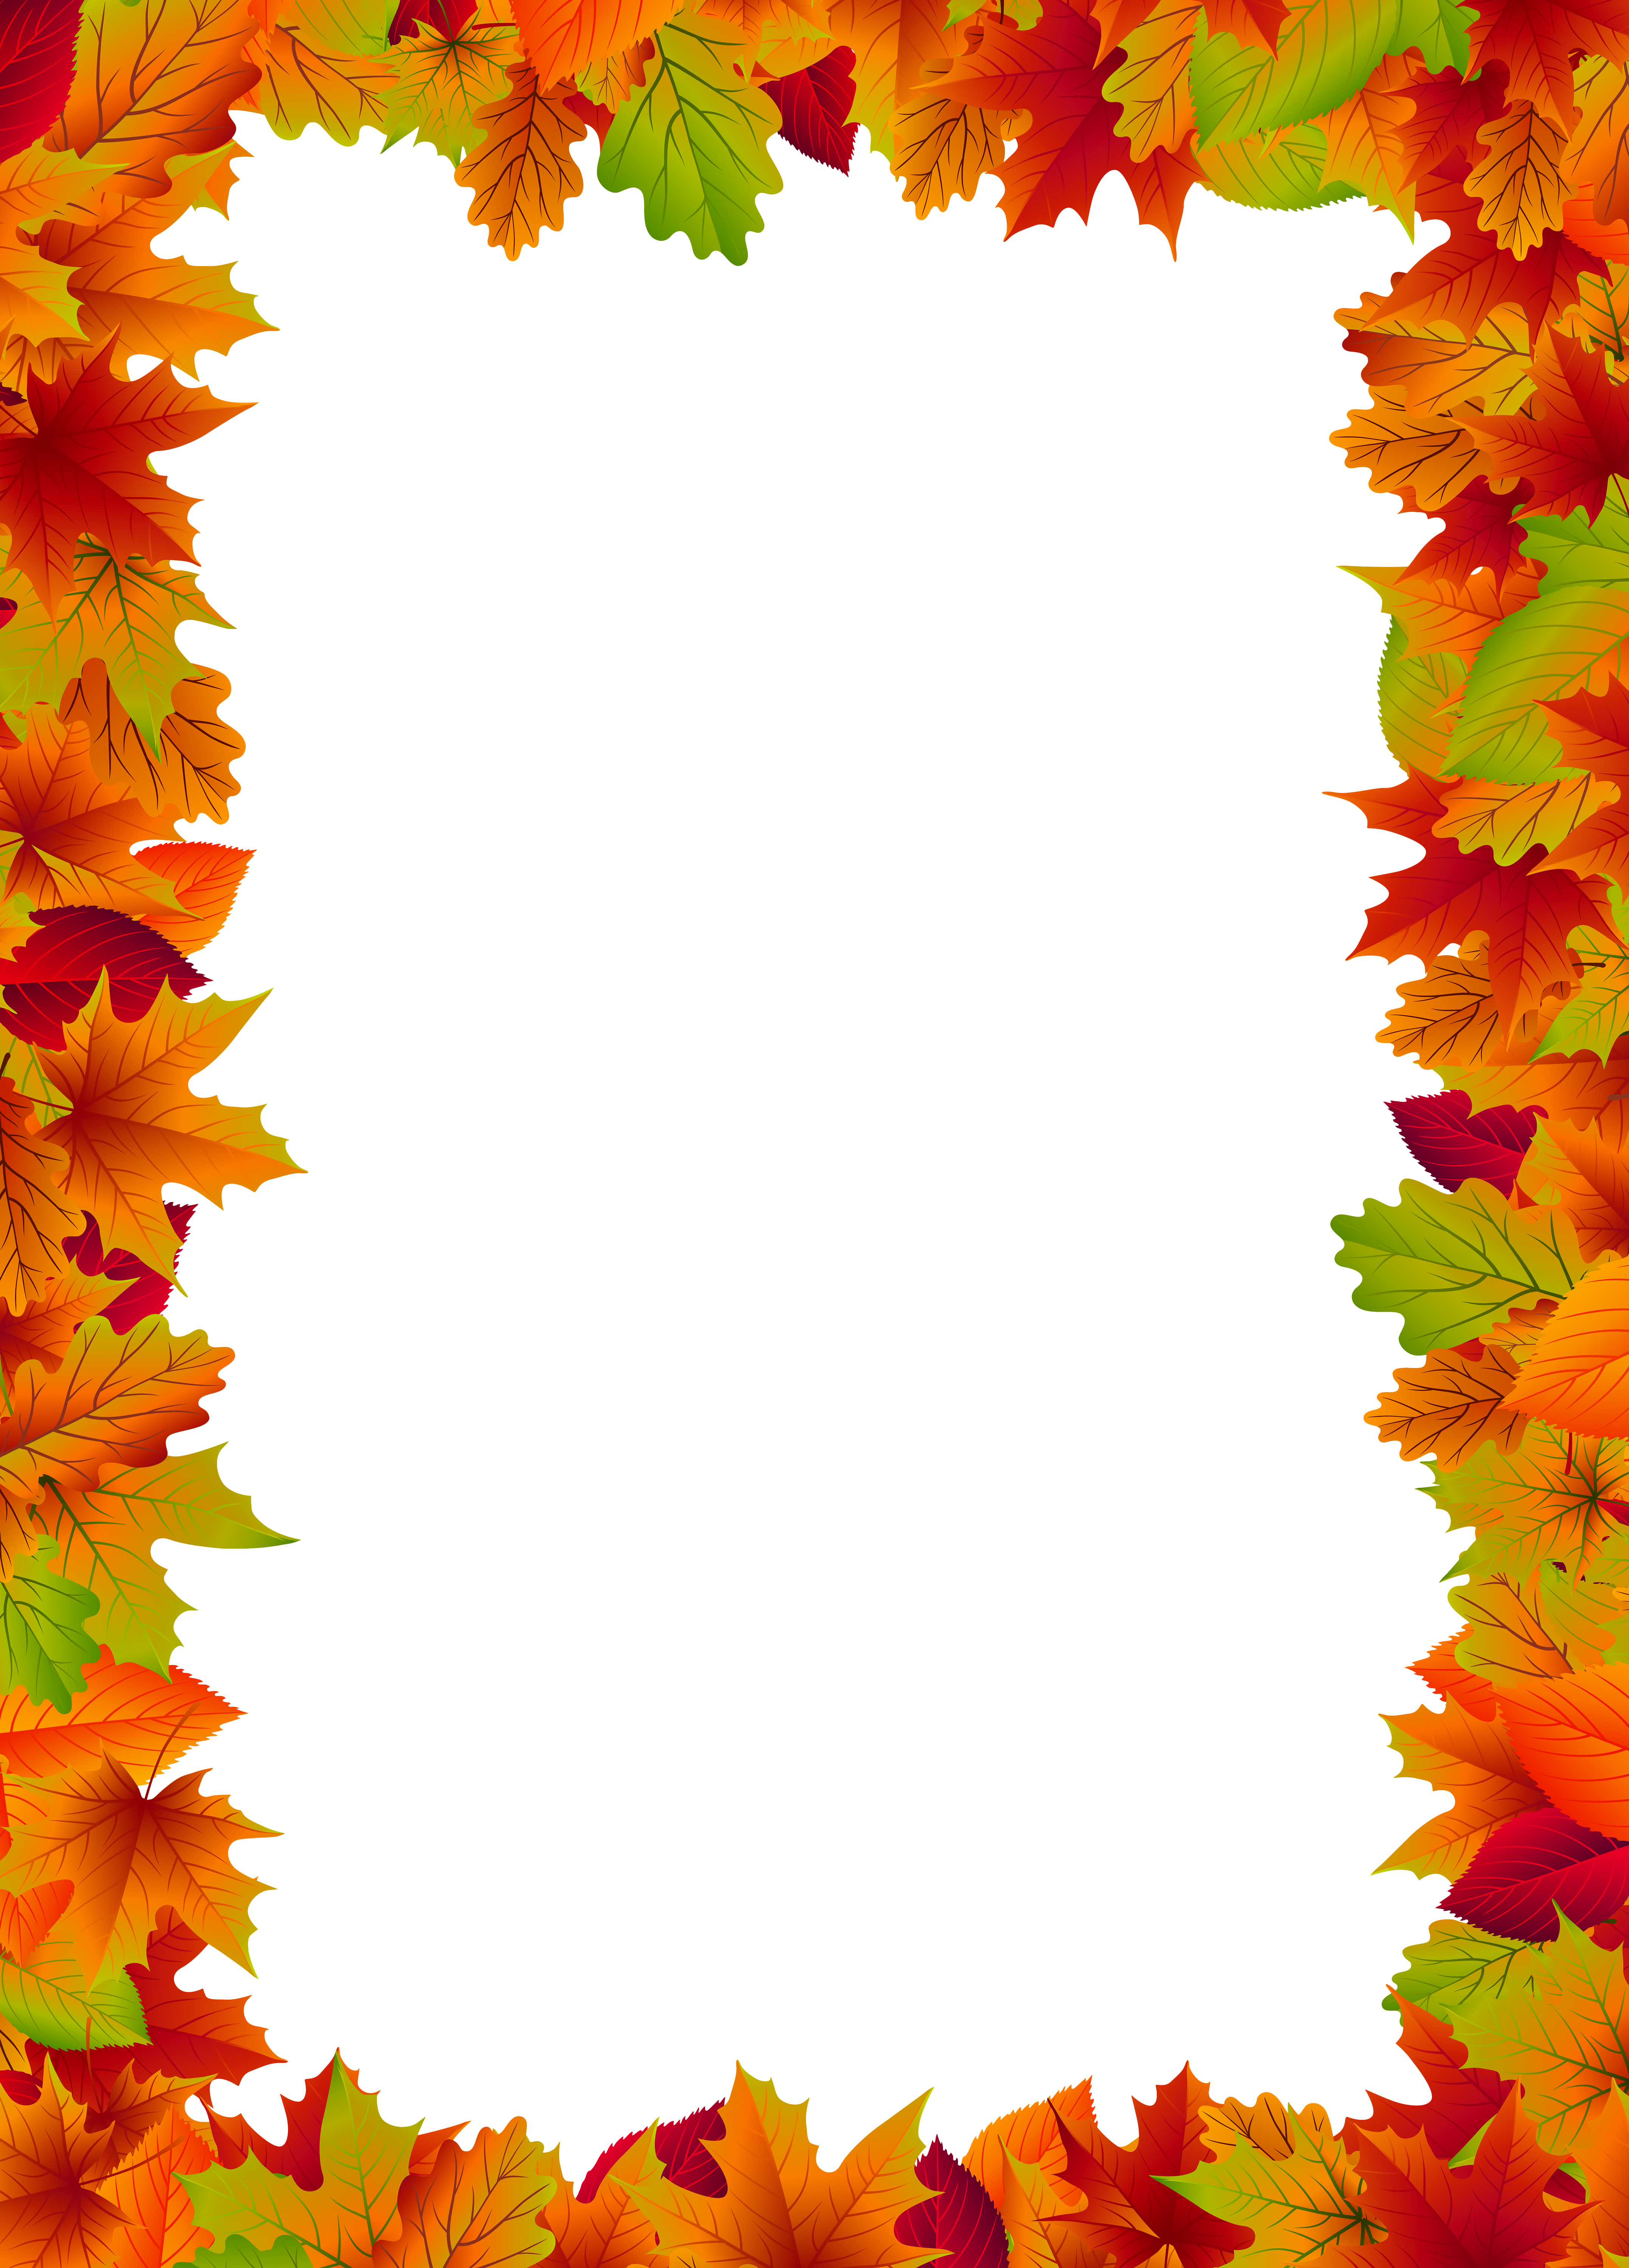 Fall Border Frame PNG Clip Art Image.